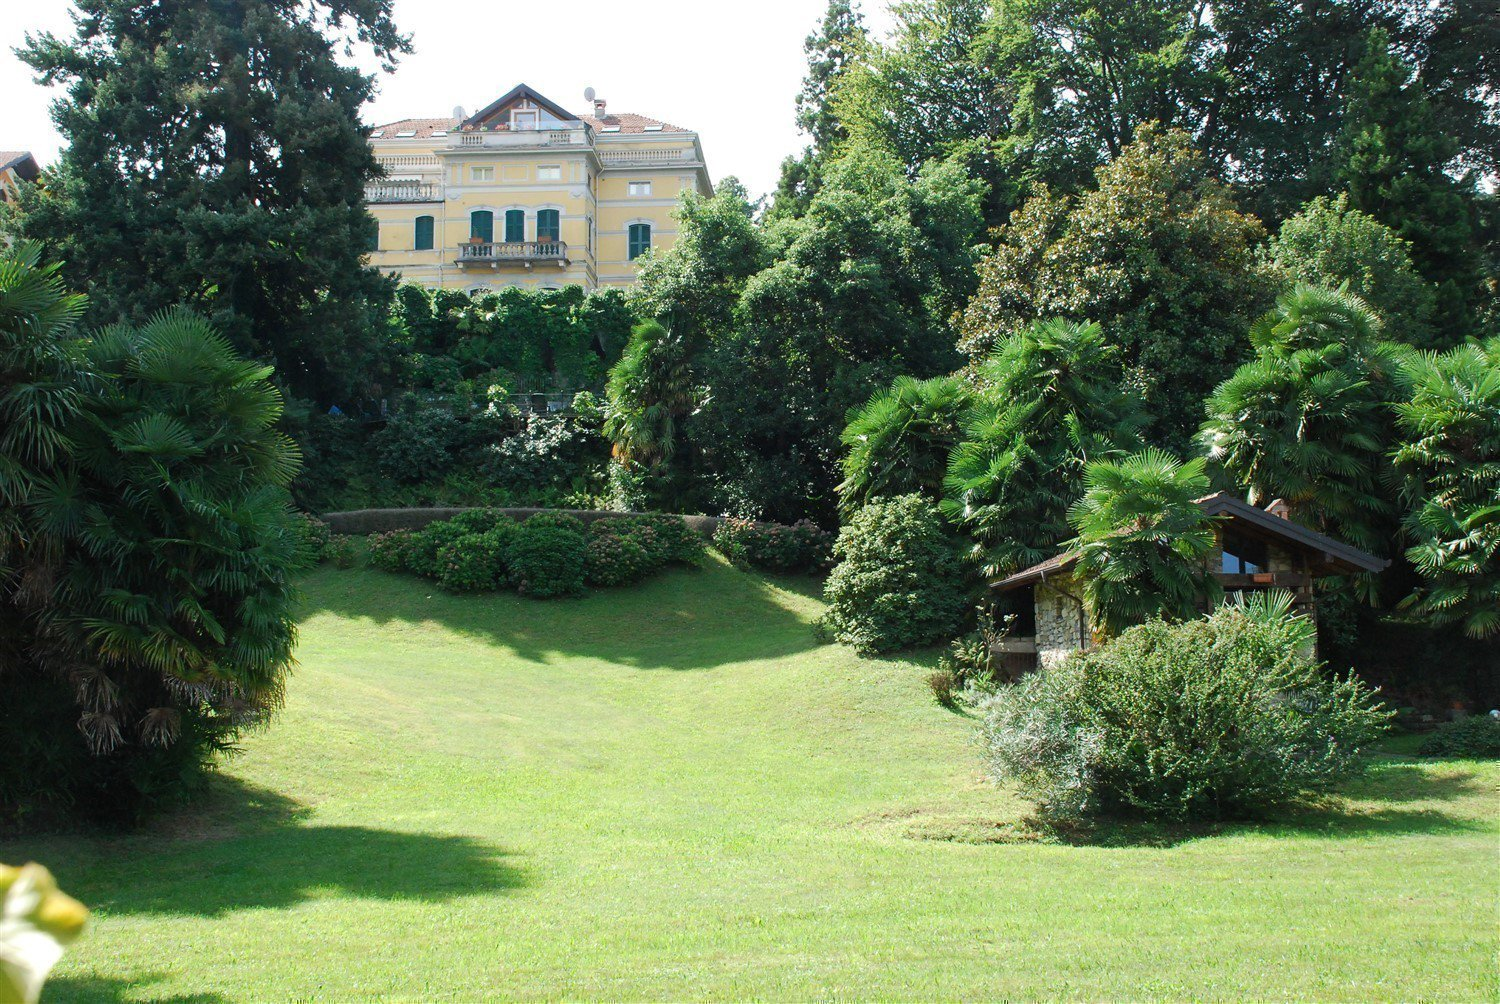 Luxurious apartment for sale in Stresa - large garden